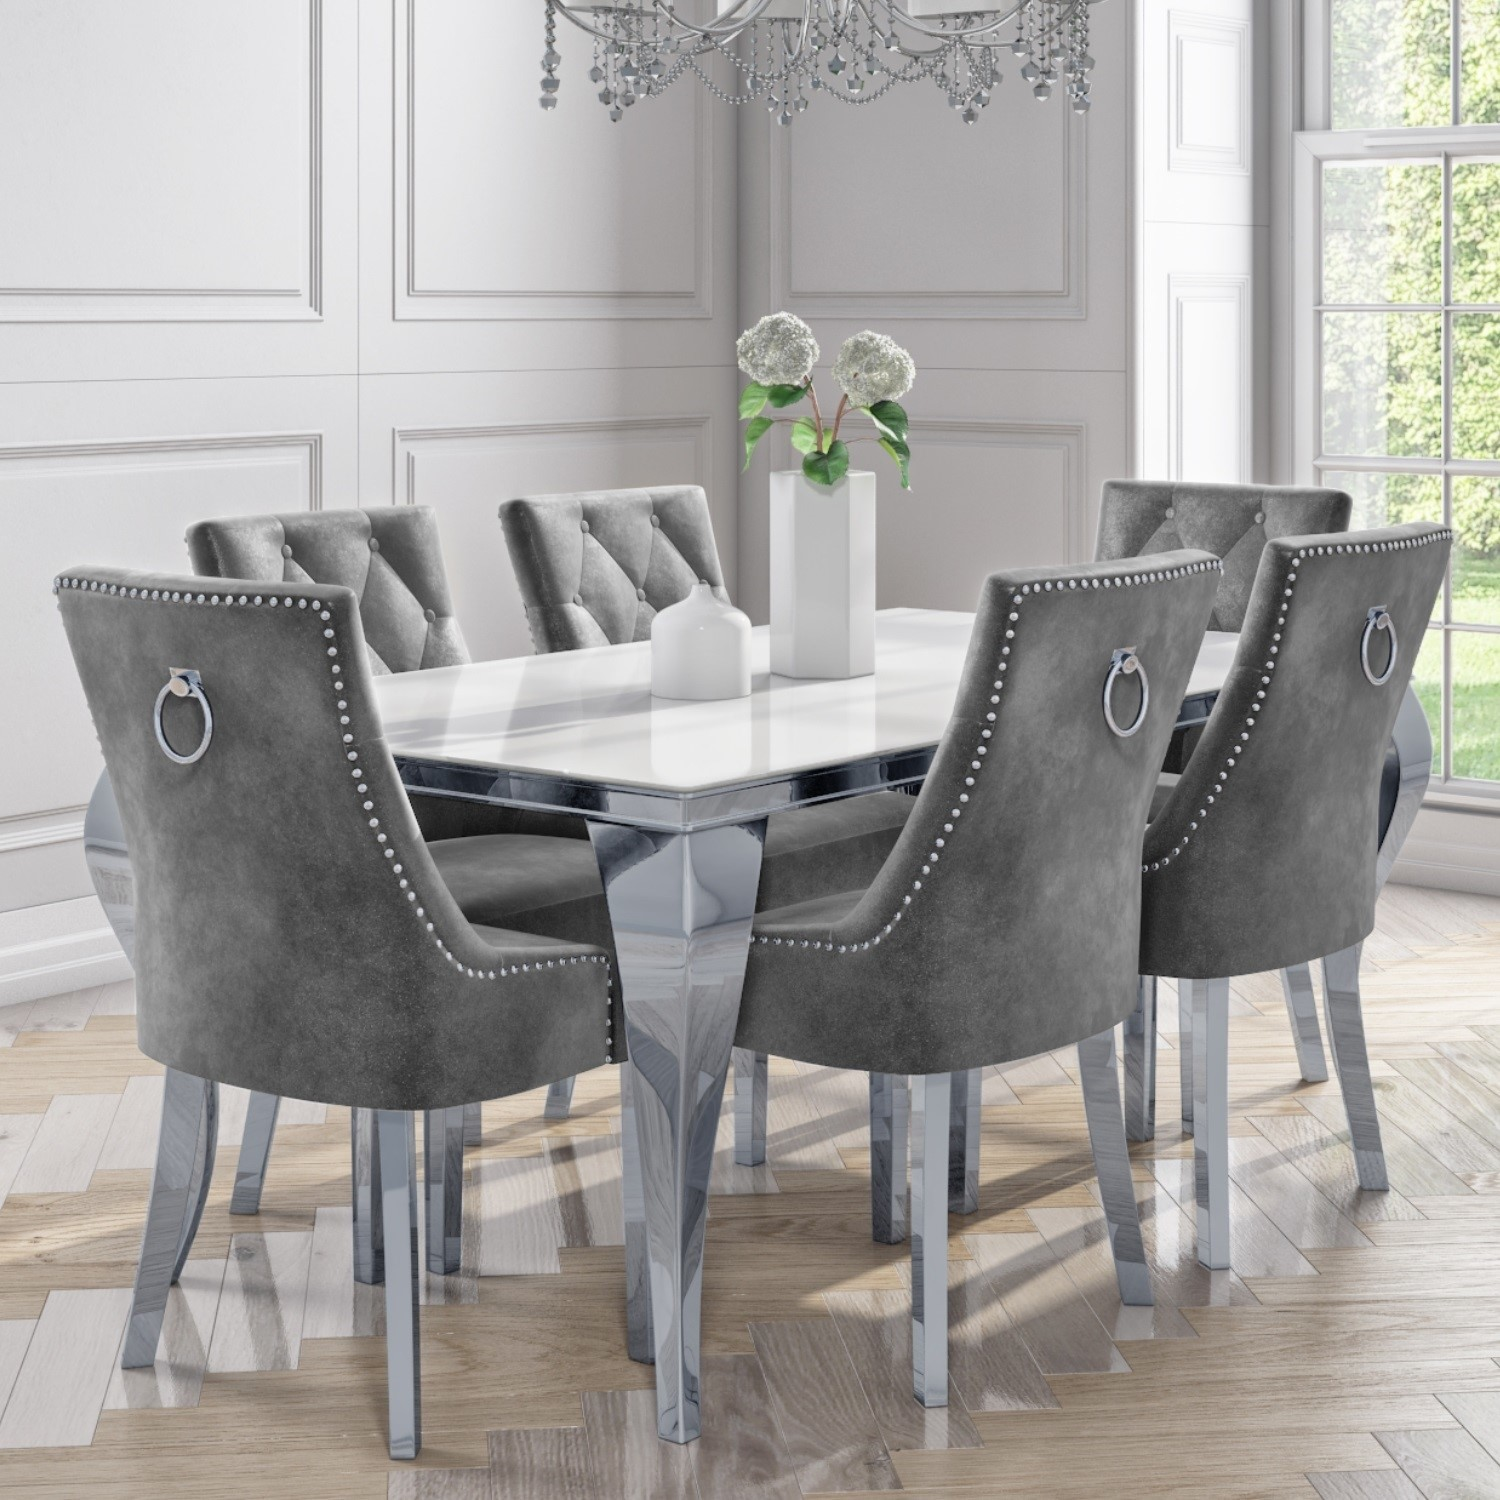 White Mirrored Dining Table With 6 Chairs In Grey Velvet Louis Furniture123